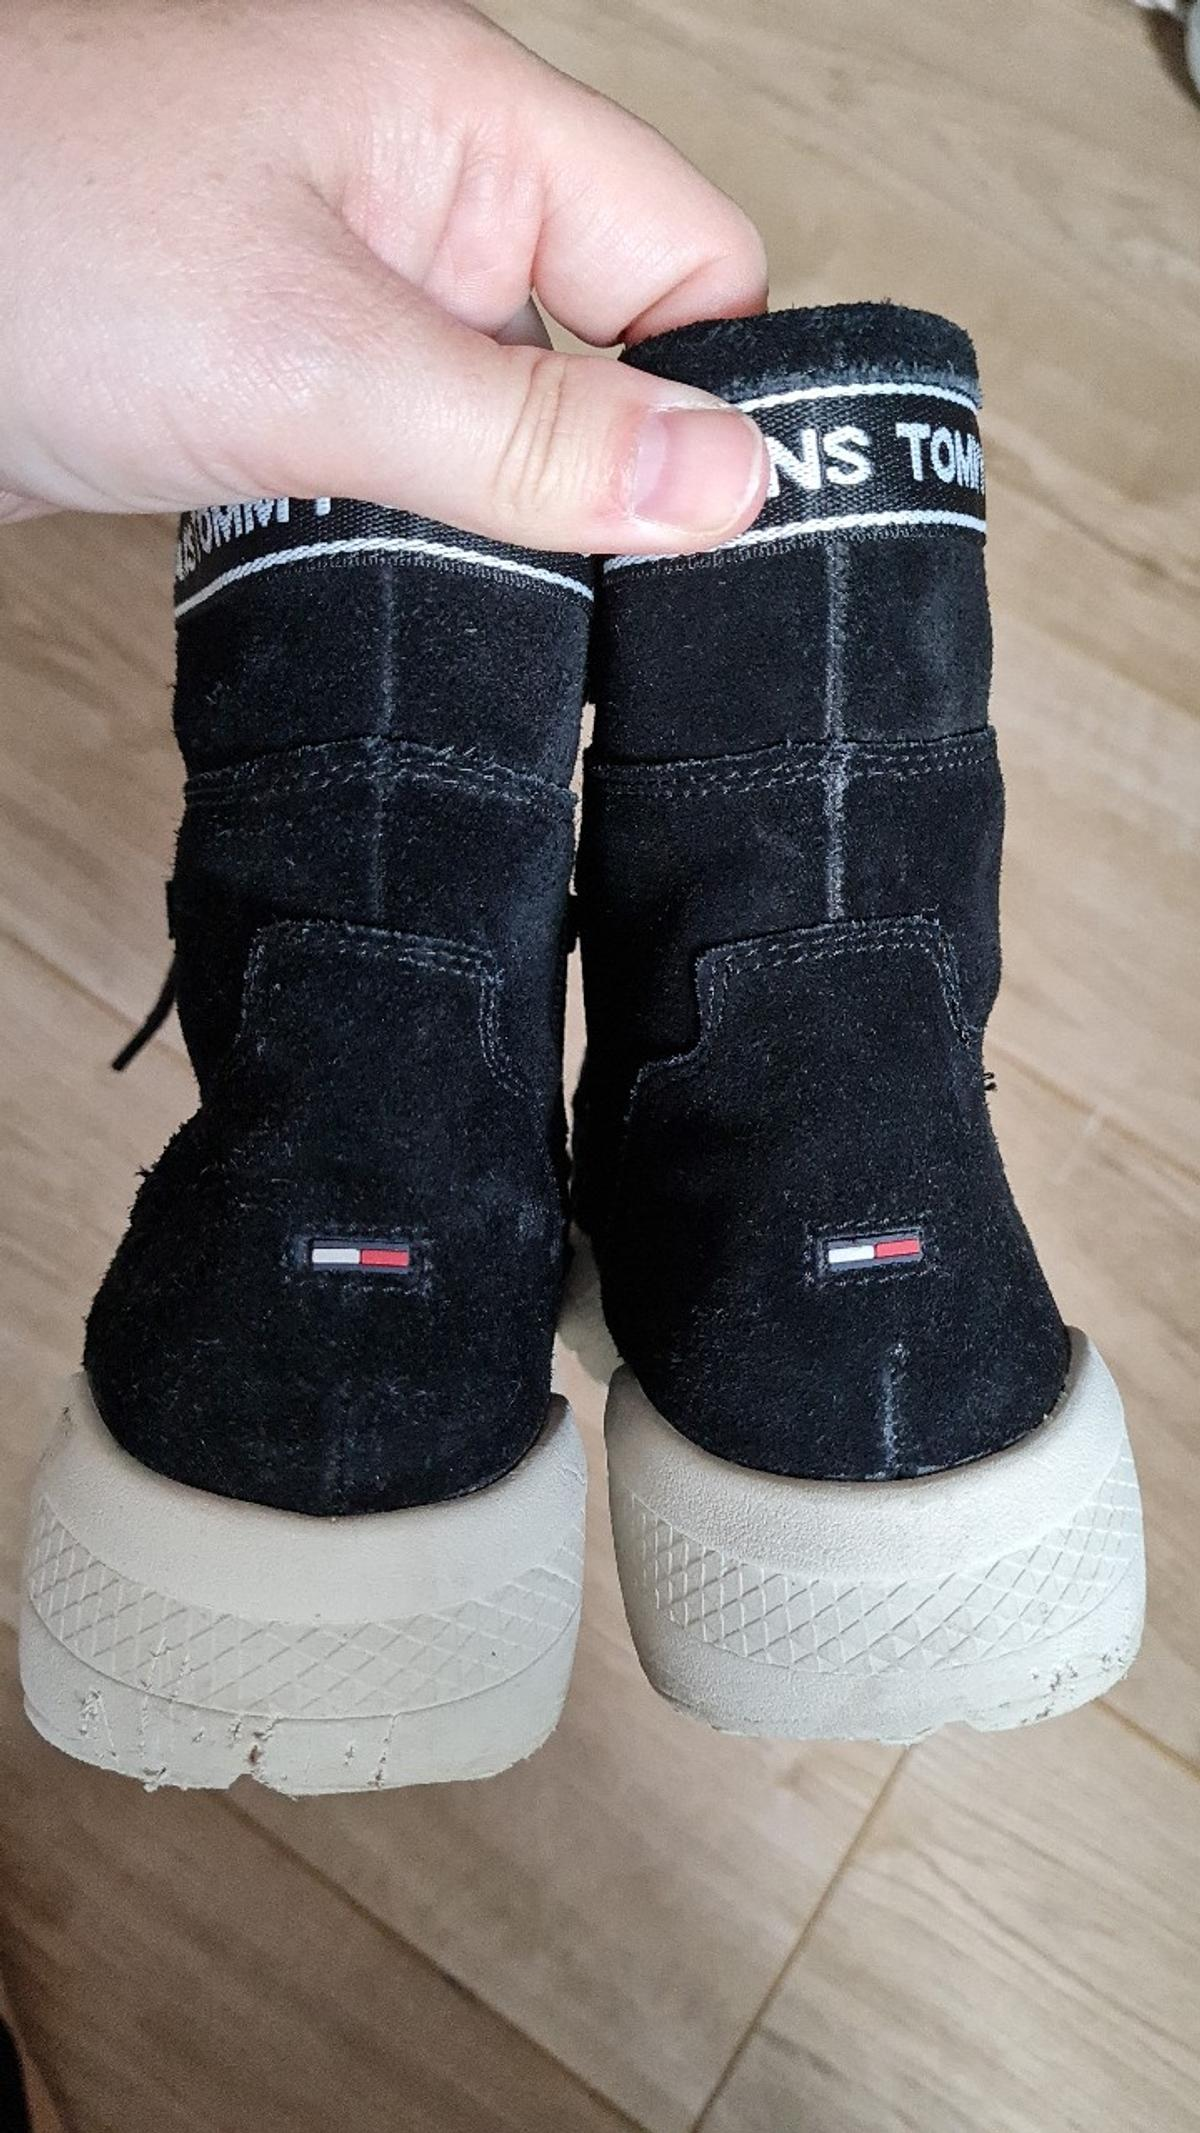 Tommy Jeans Boots Size 4. Worn a hand full of times. Really nice condition and so comfortable and warm.